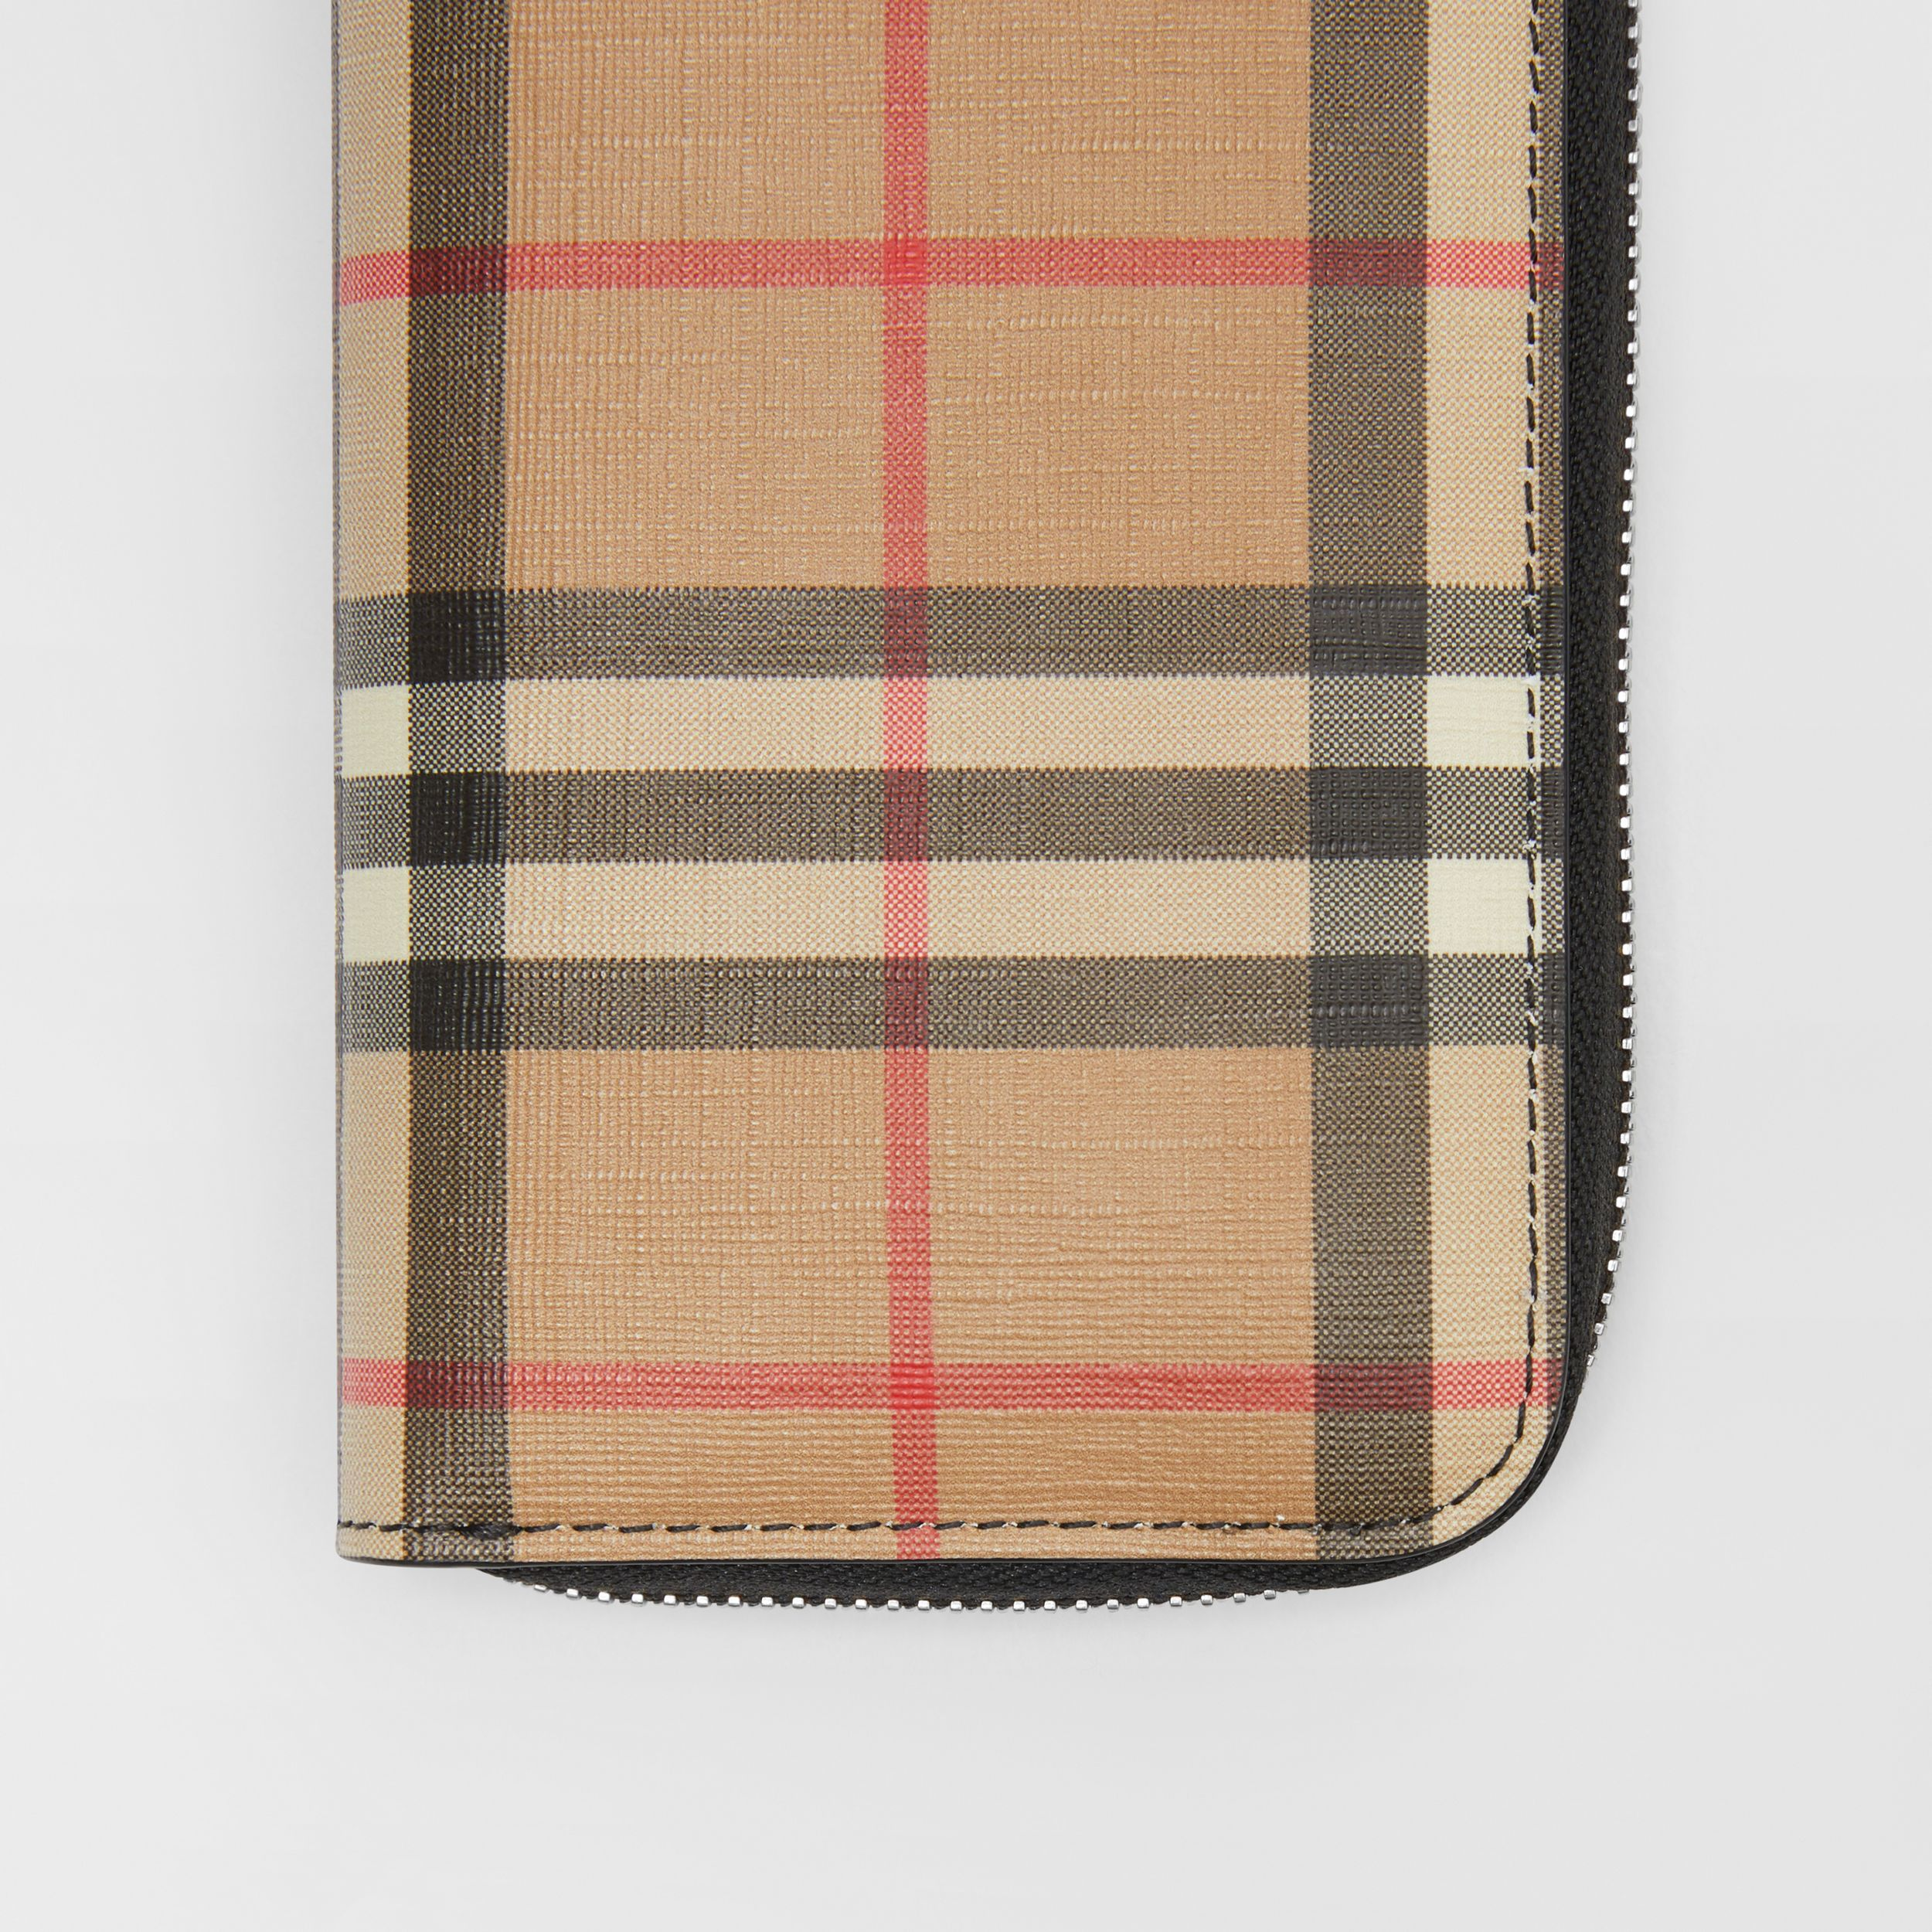 Vintage Check and Leather Ziparound Wallet in Black - Women | Burberry - 2